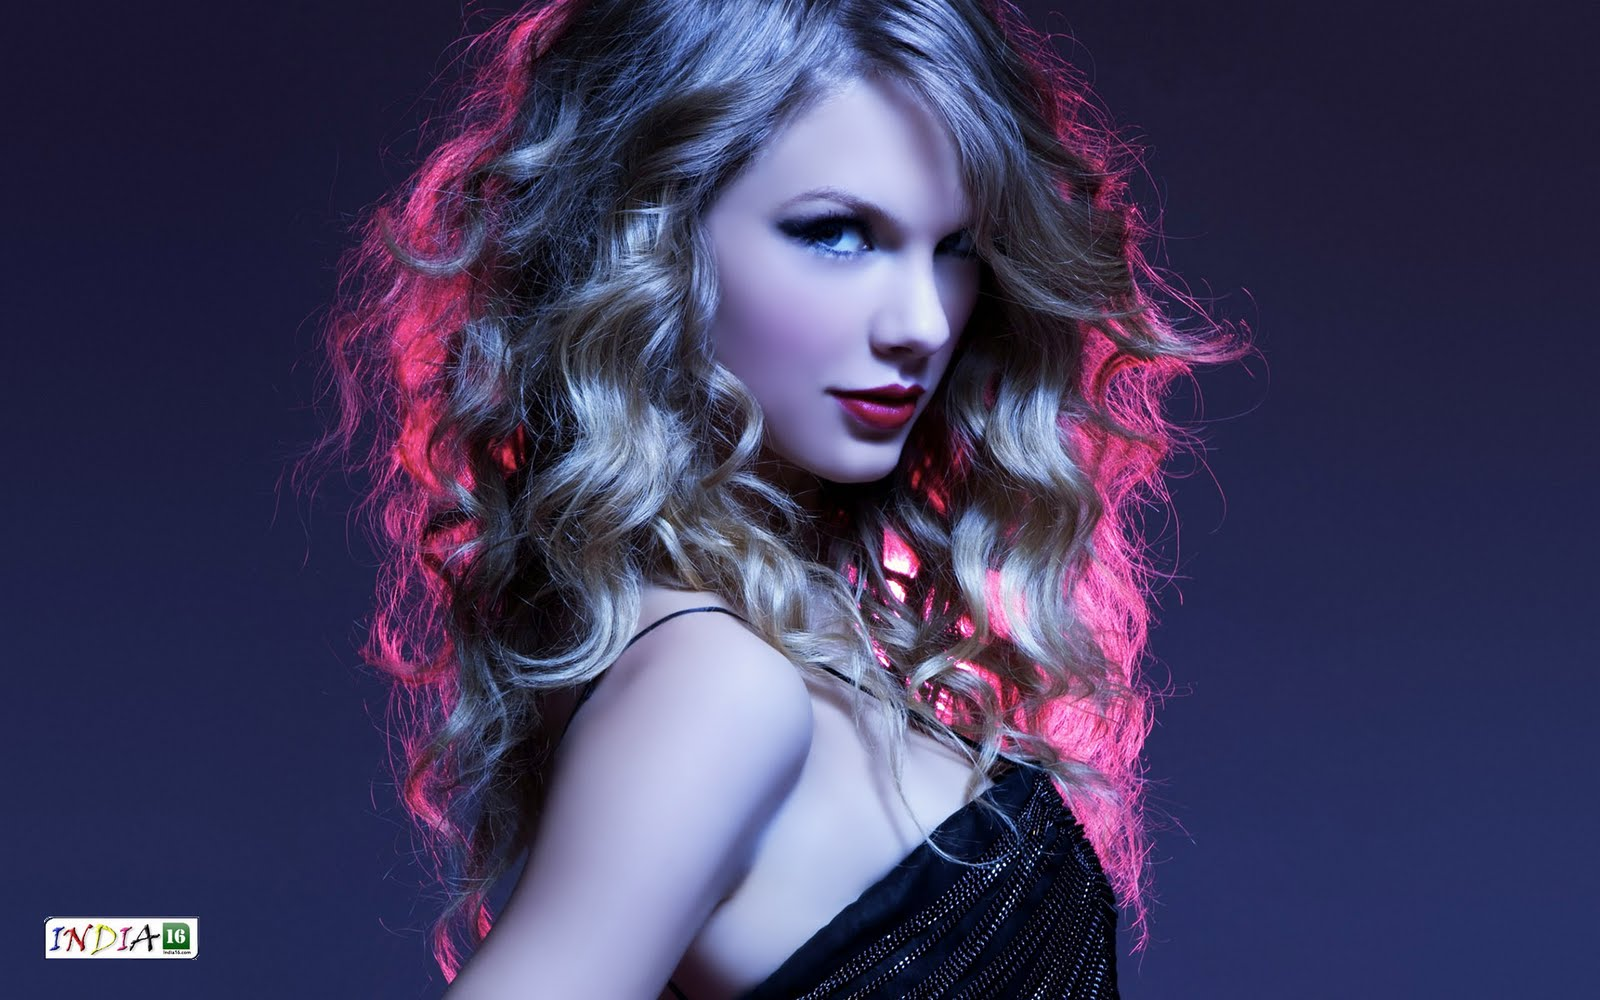 Awesomeness Wallpaper: taylor swift hot wallpapers